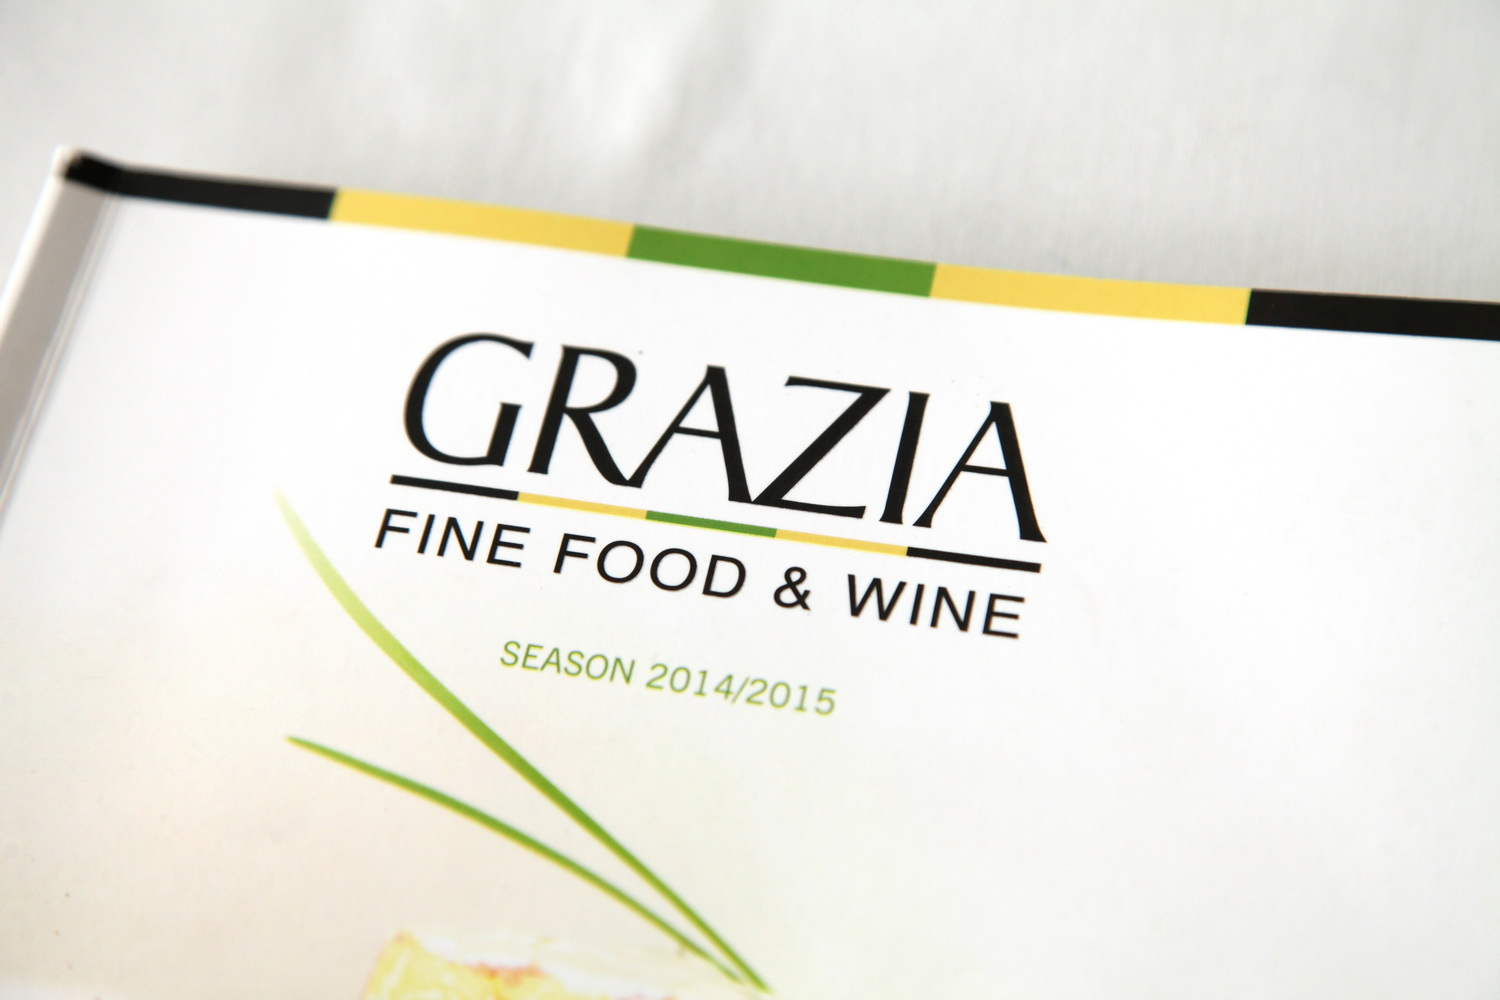 fine food and wine, Grazia, food photography